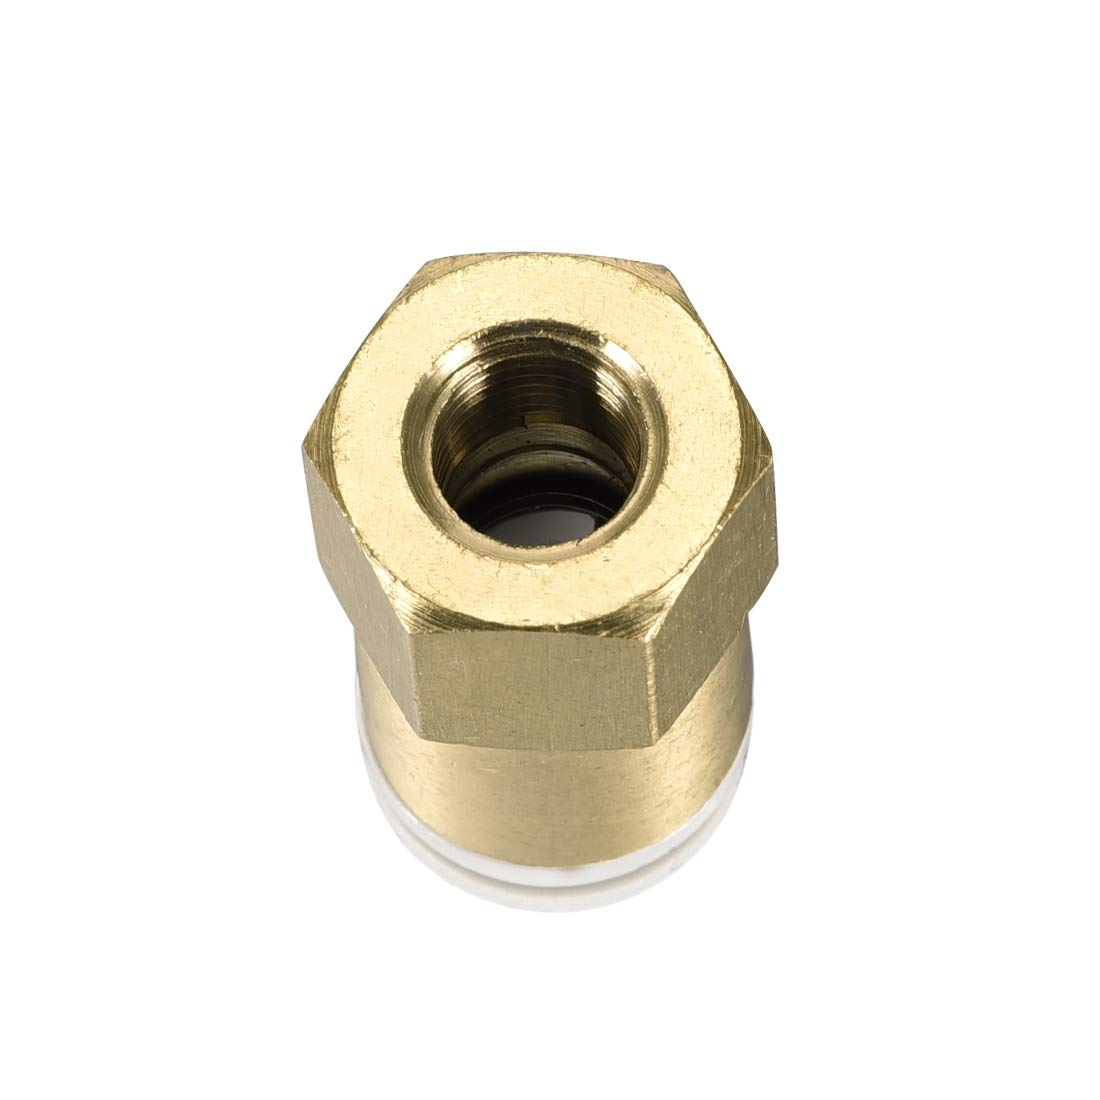 uxcell Push to Connect Tube Fittings 10mm Tube OD x 1//8 PT Female Straight Pneumatic Connecter Pipe Fitting Golden Tone 2Pcs